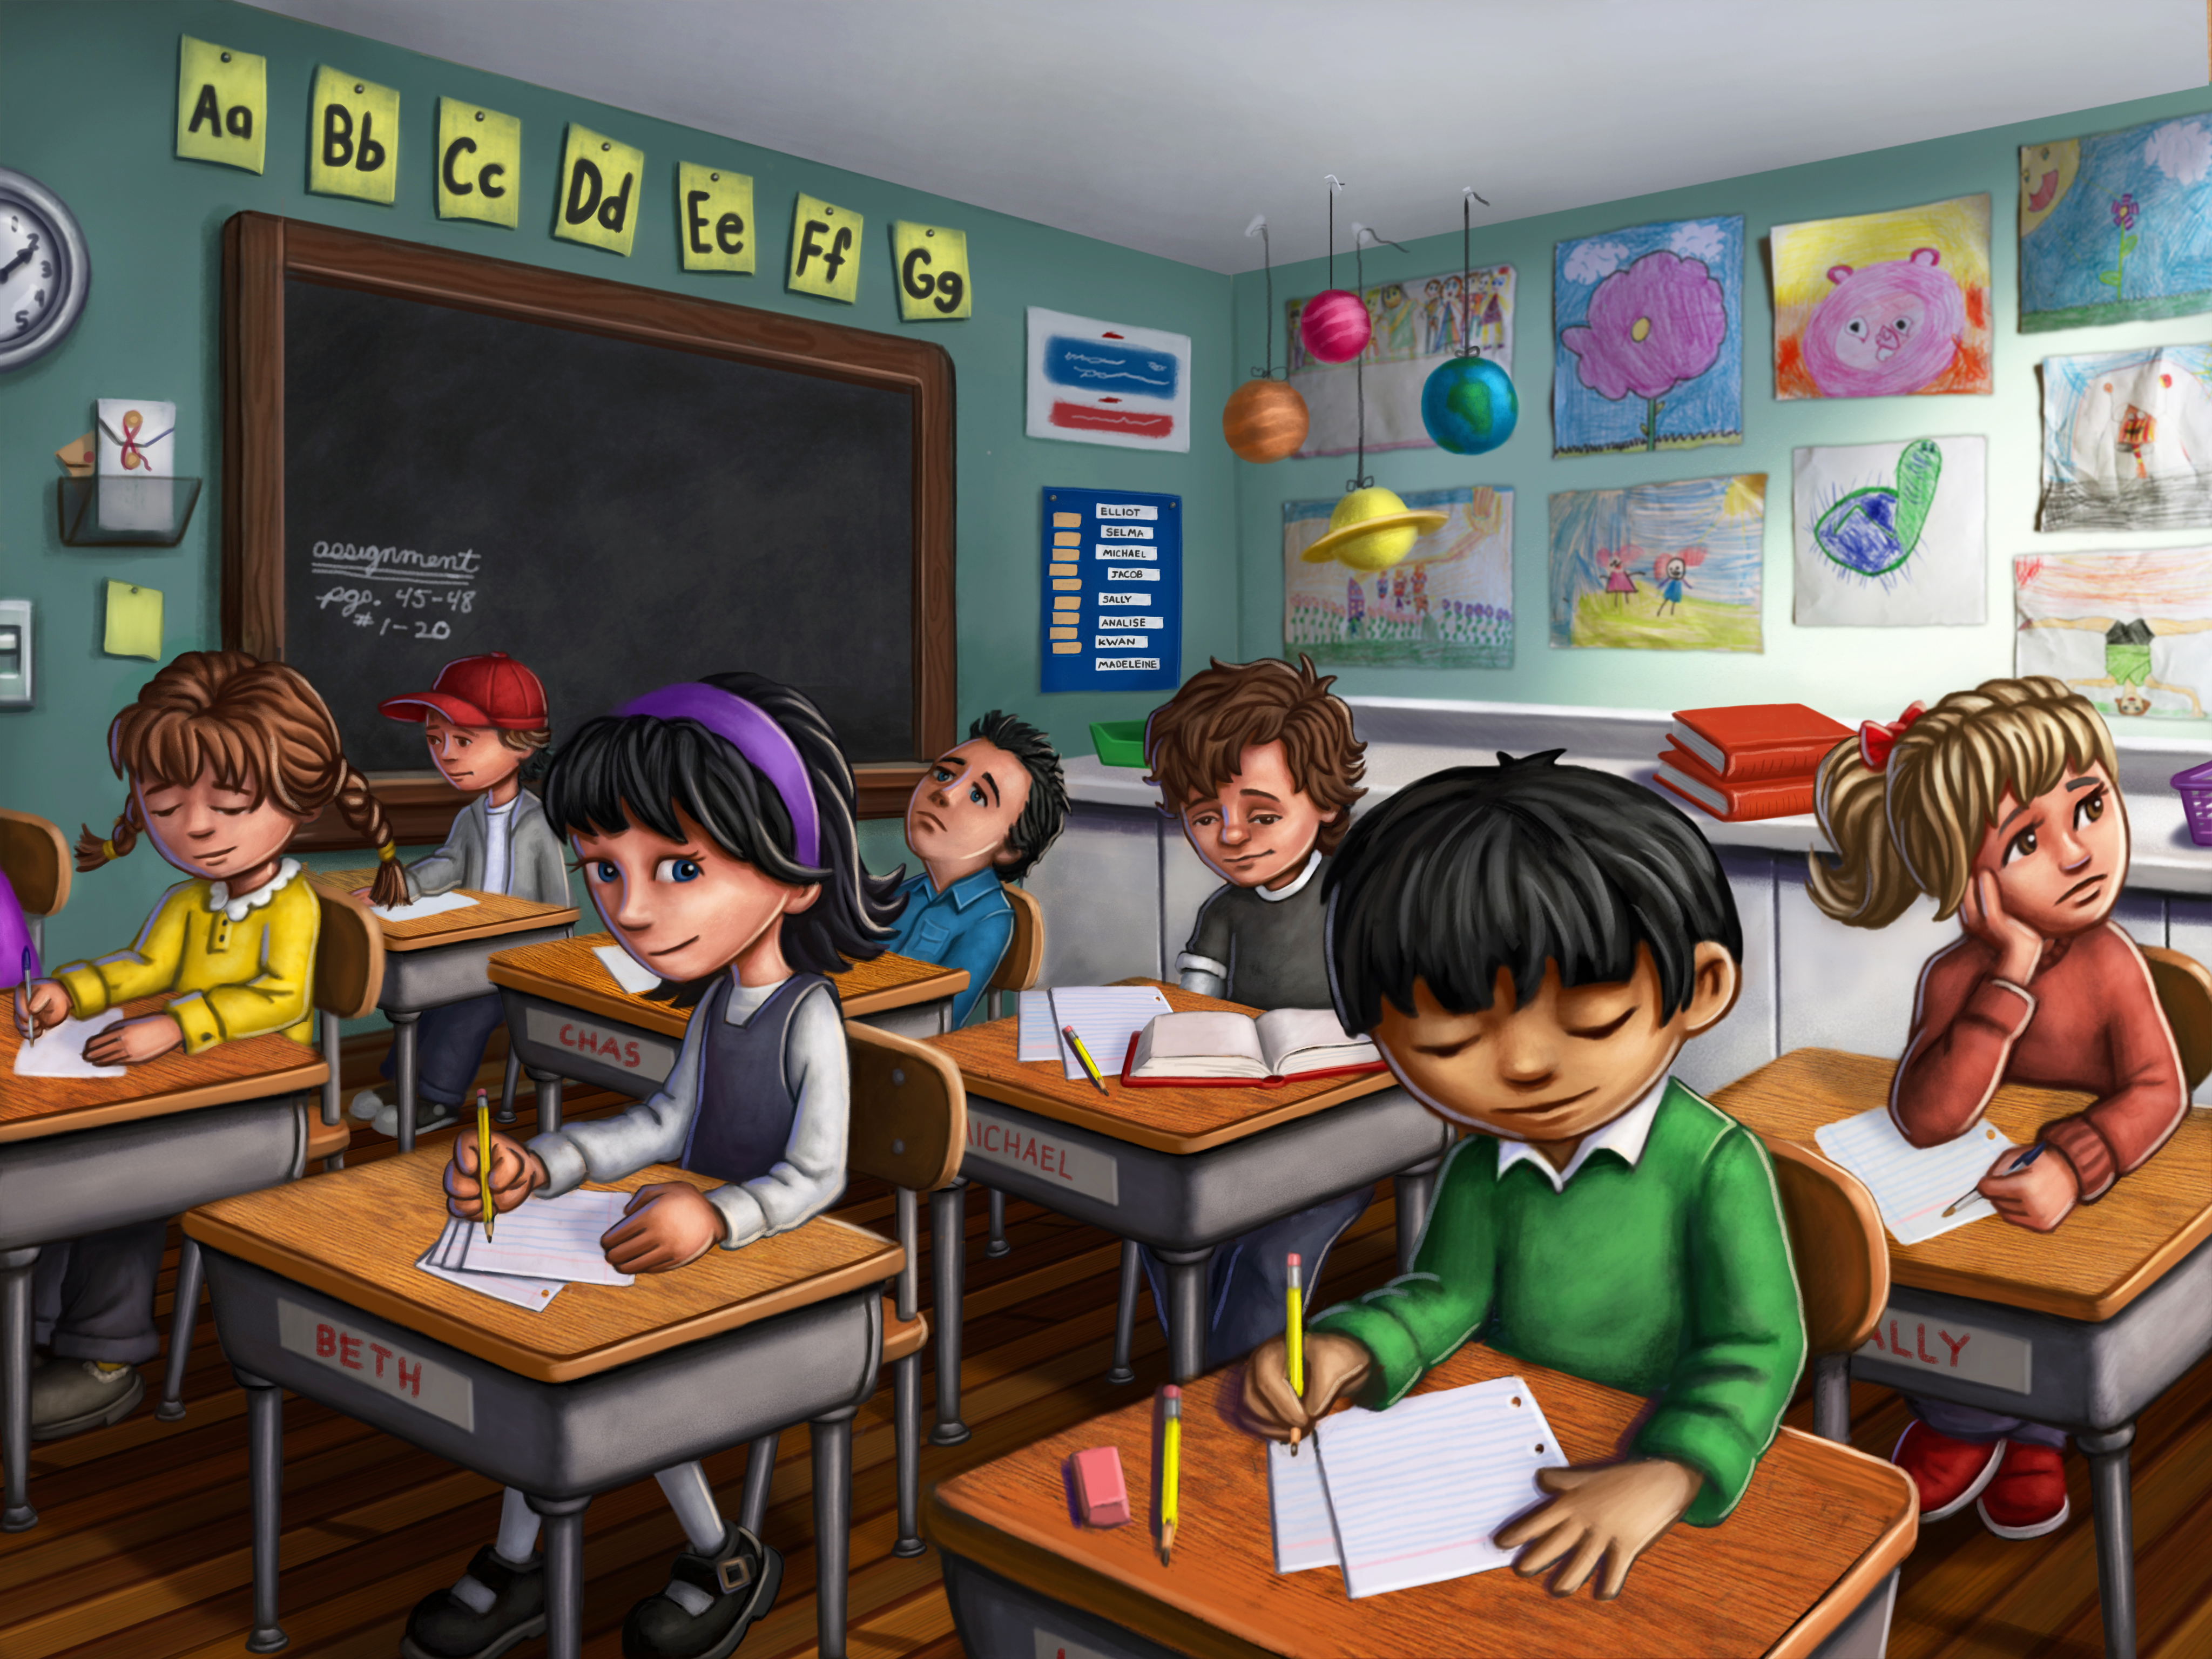 Classroom clipart free images clip Free My Classroom Cliparts, Download Free Clip Art, Free Clip Art on ... clip